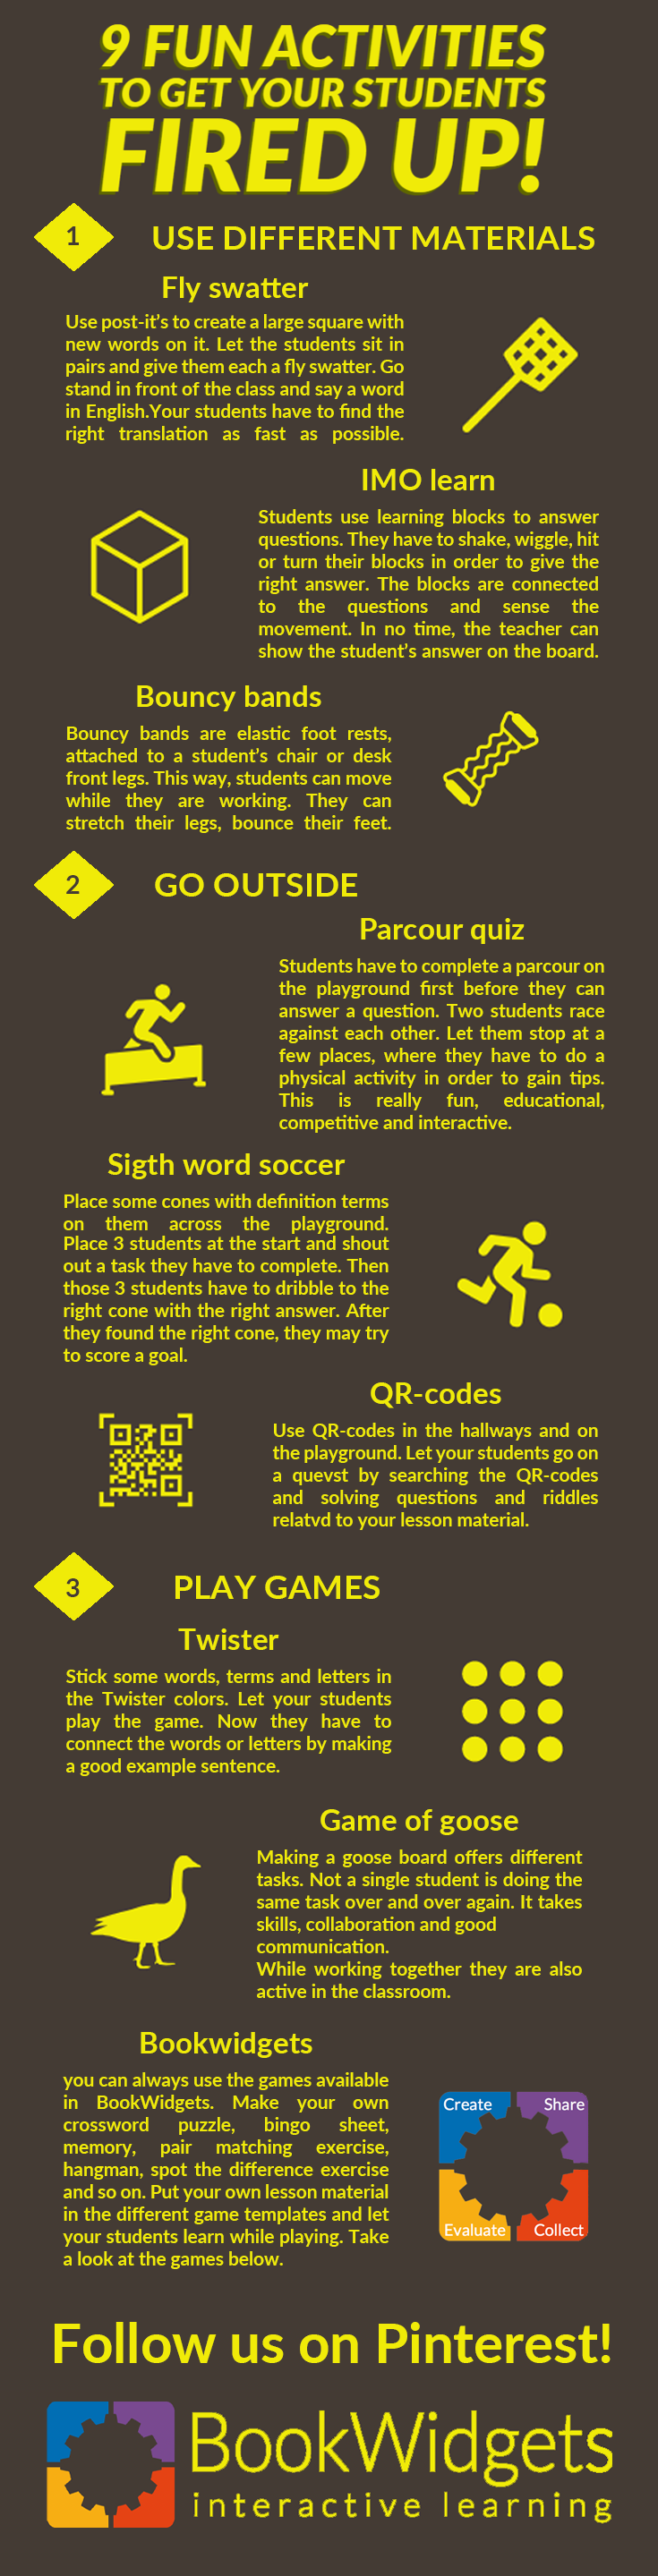 Activities to get your students moving